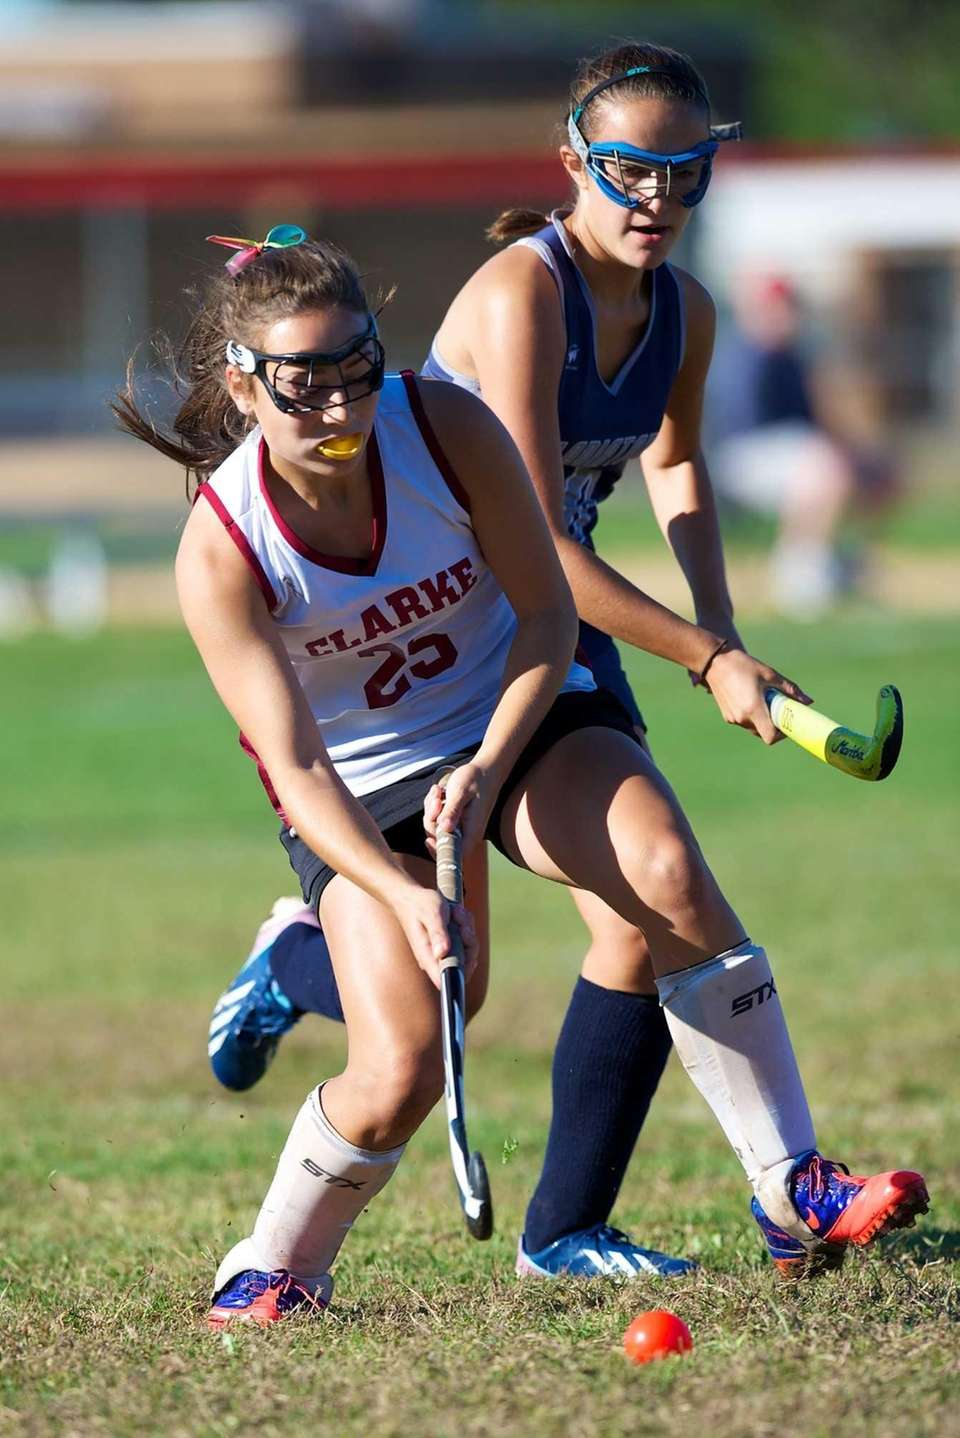 Clarke midfielder Natalie Morano (no. 25) handles the